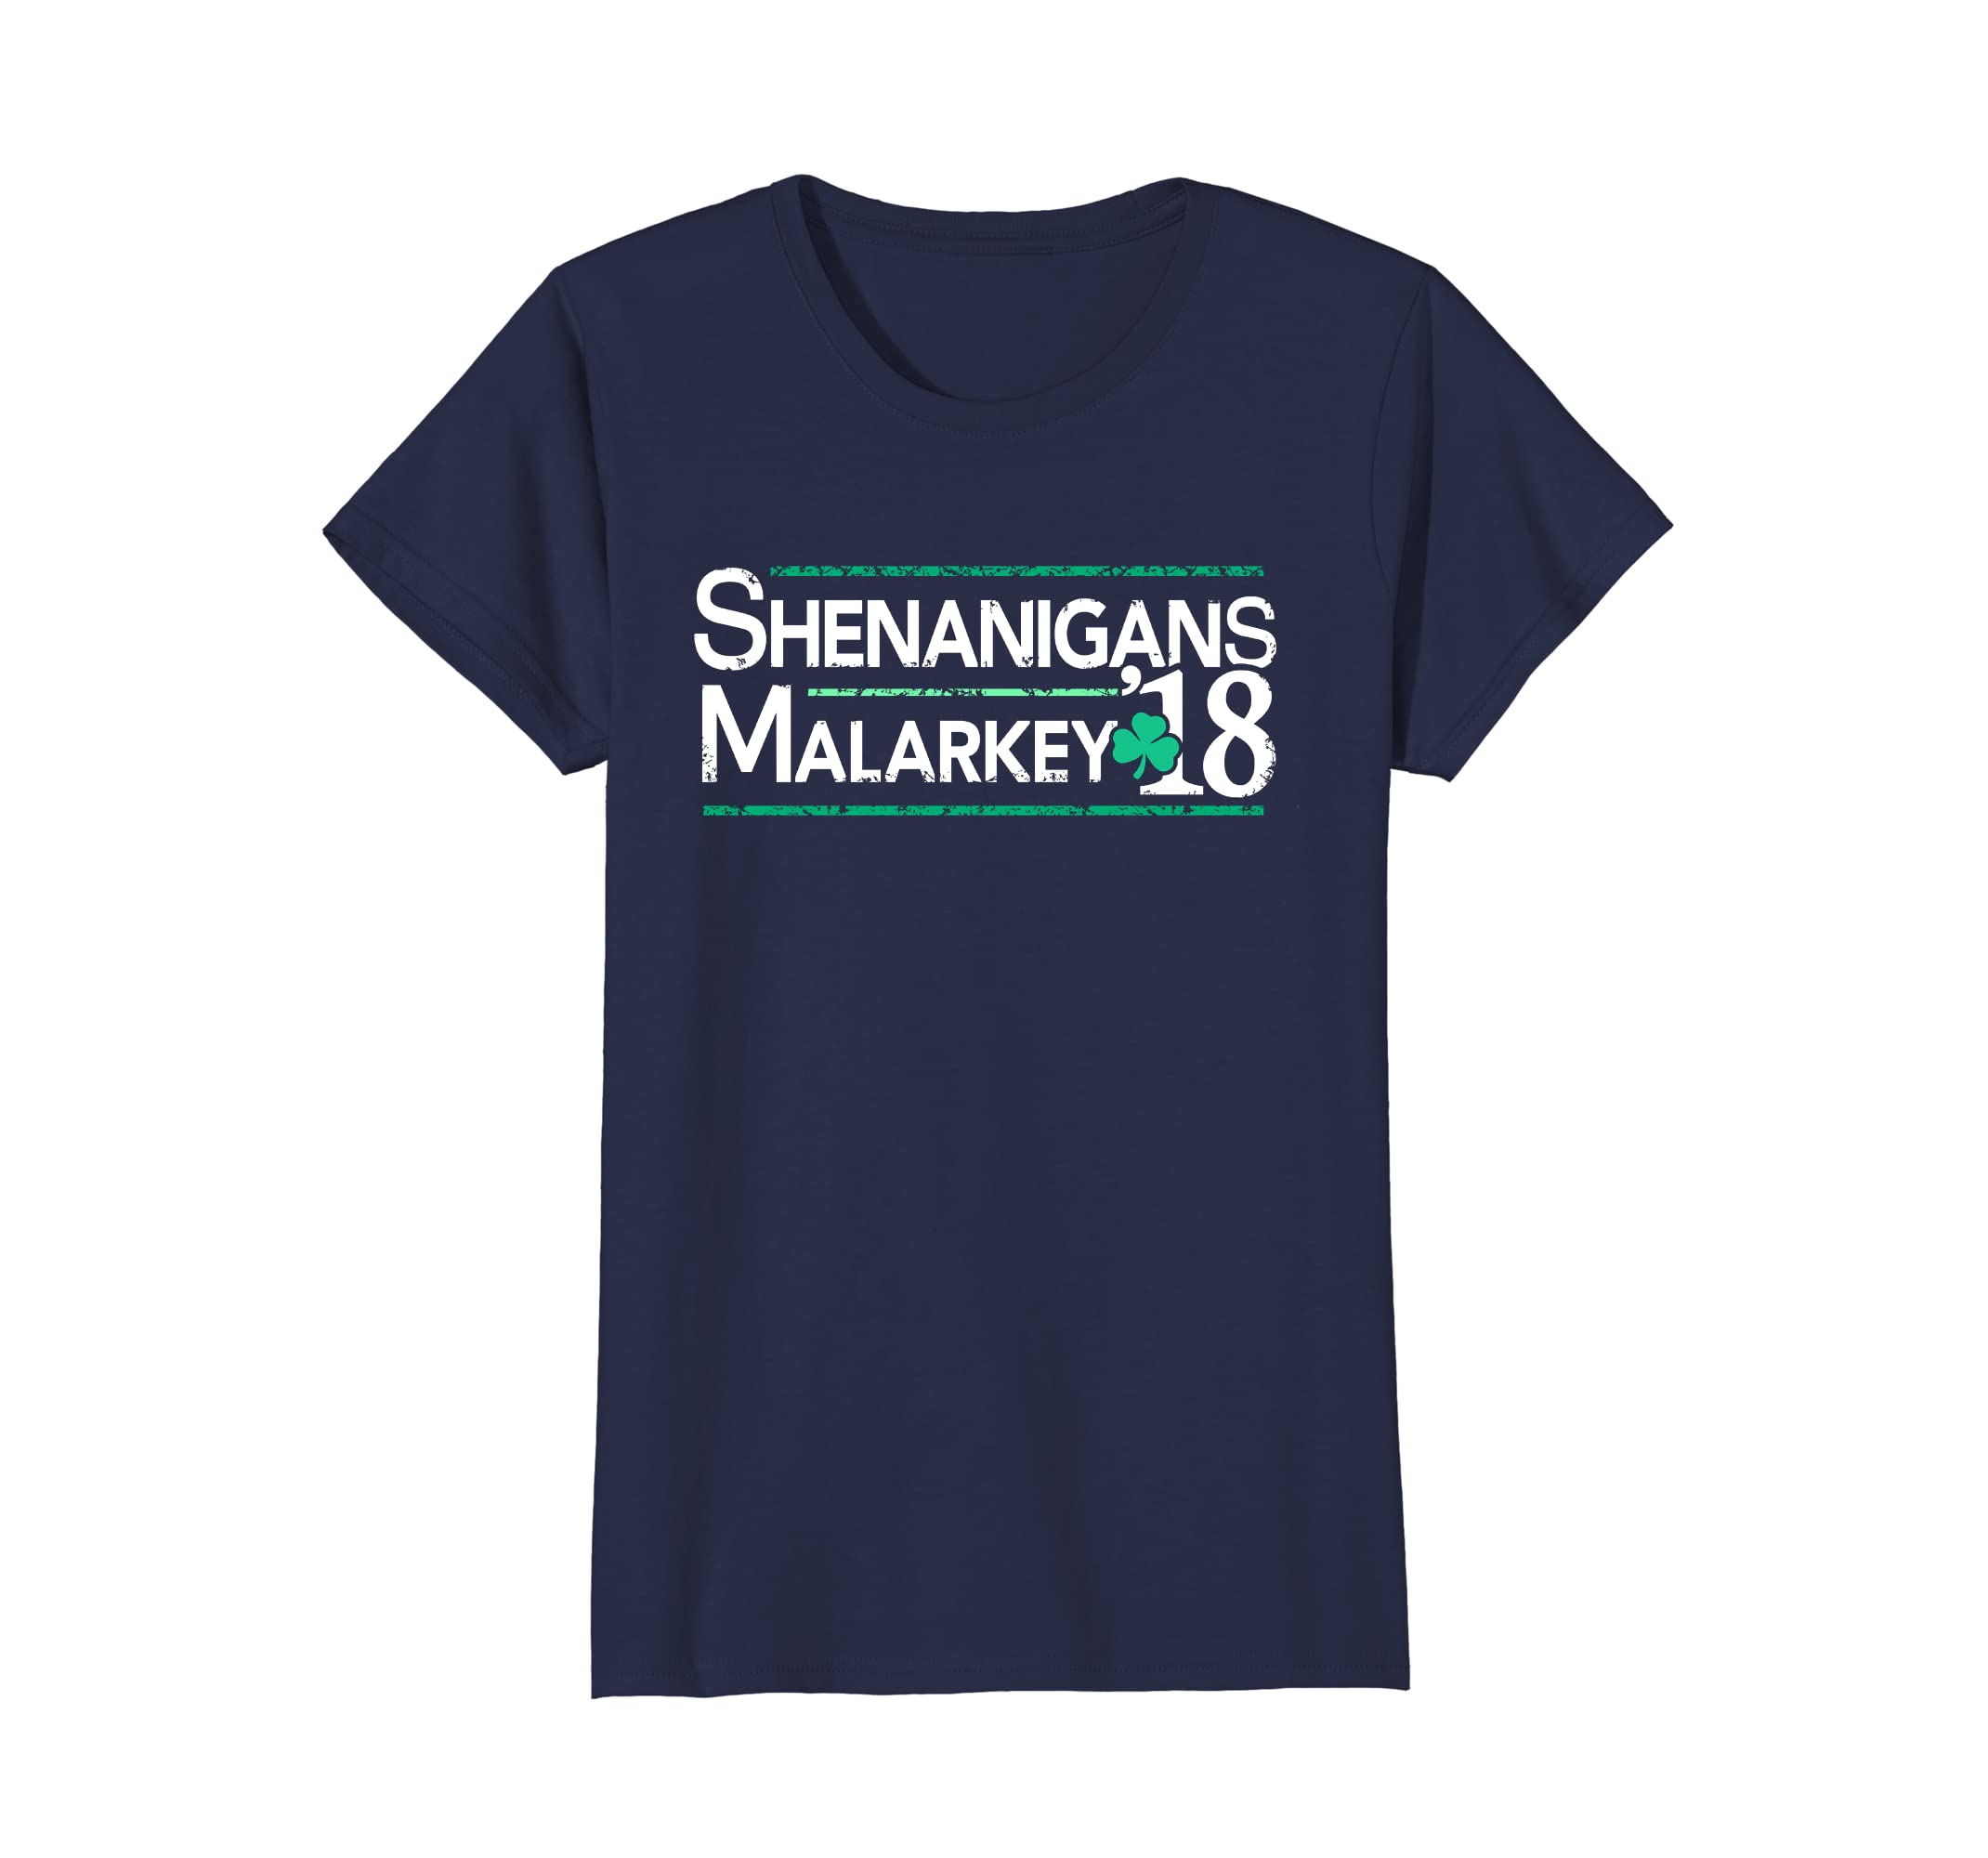 332559c65 Amazon.com: Shenanigans and Malarkey T-Shirt, St Patricks Day 2018 Shirt:  Clothing